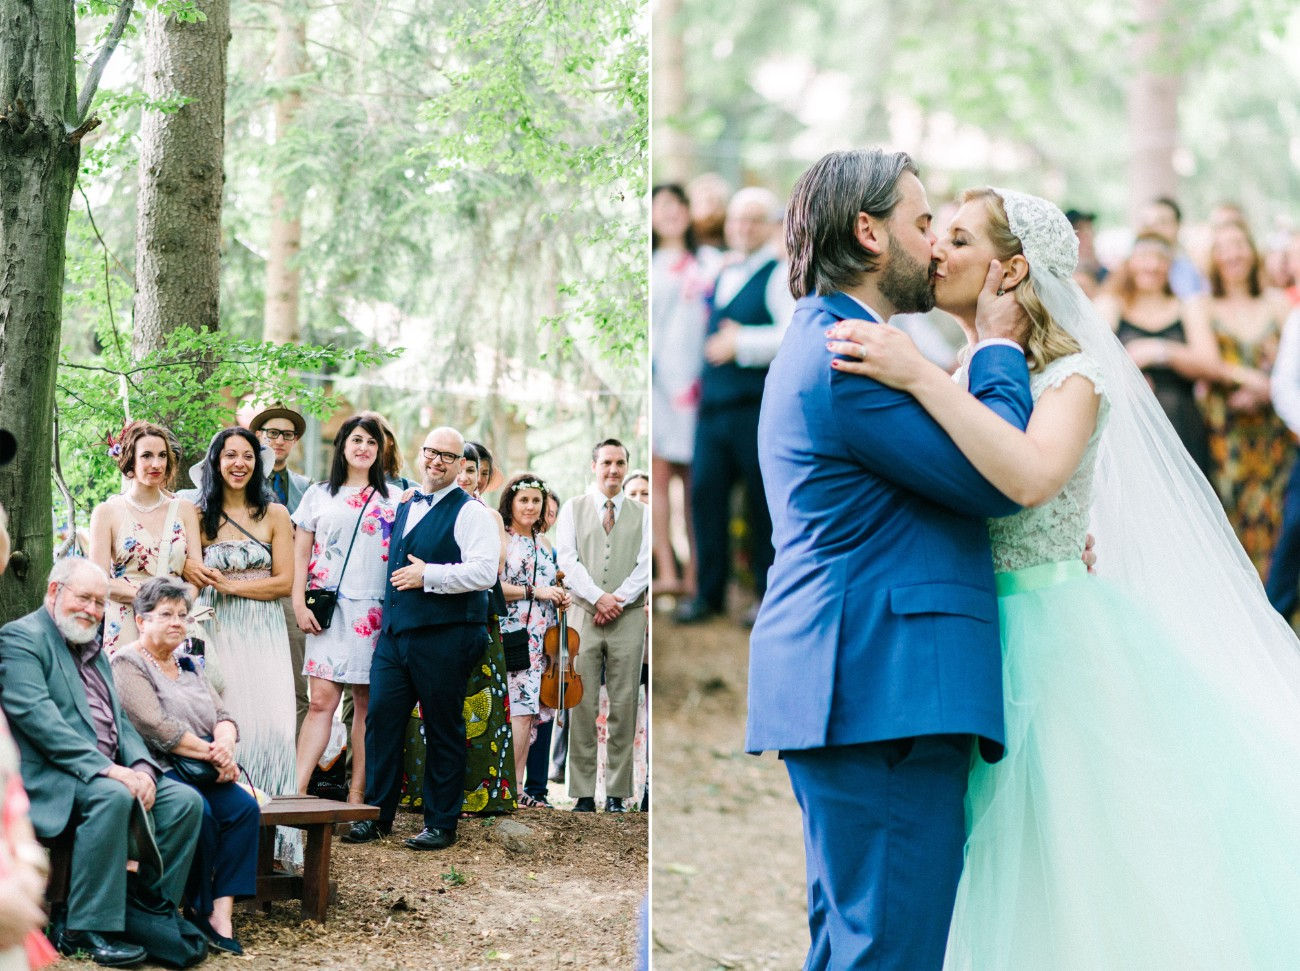 wedding in the middle of the forest.jpg